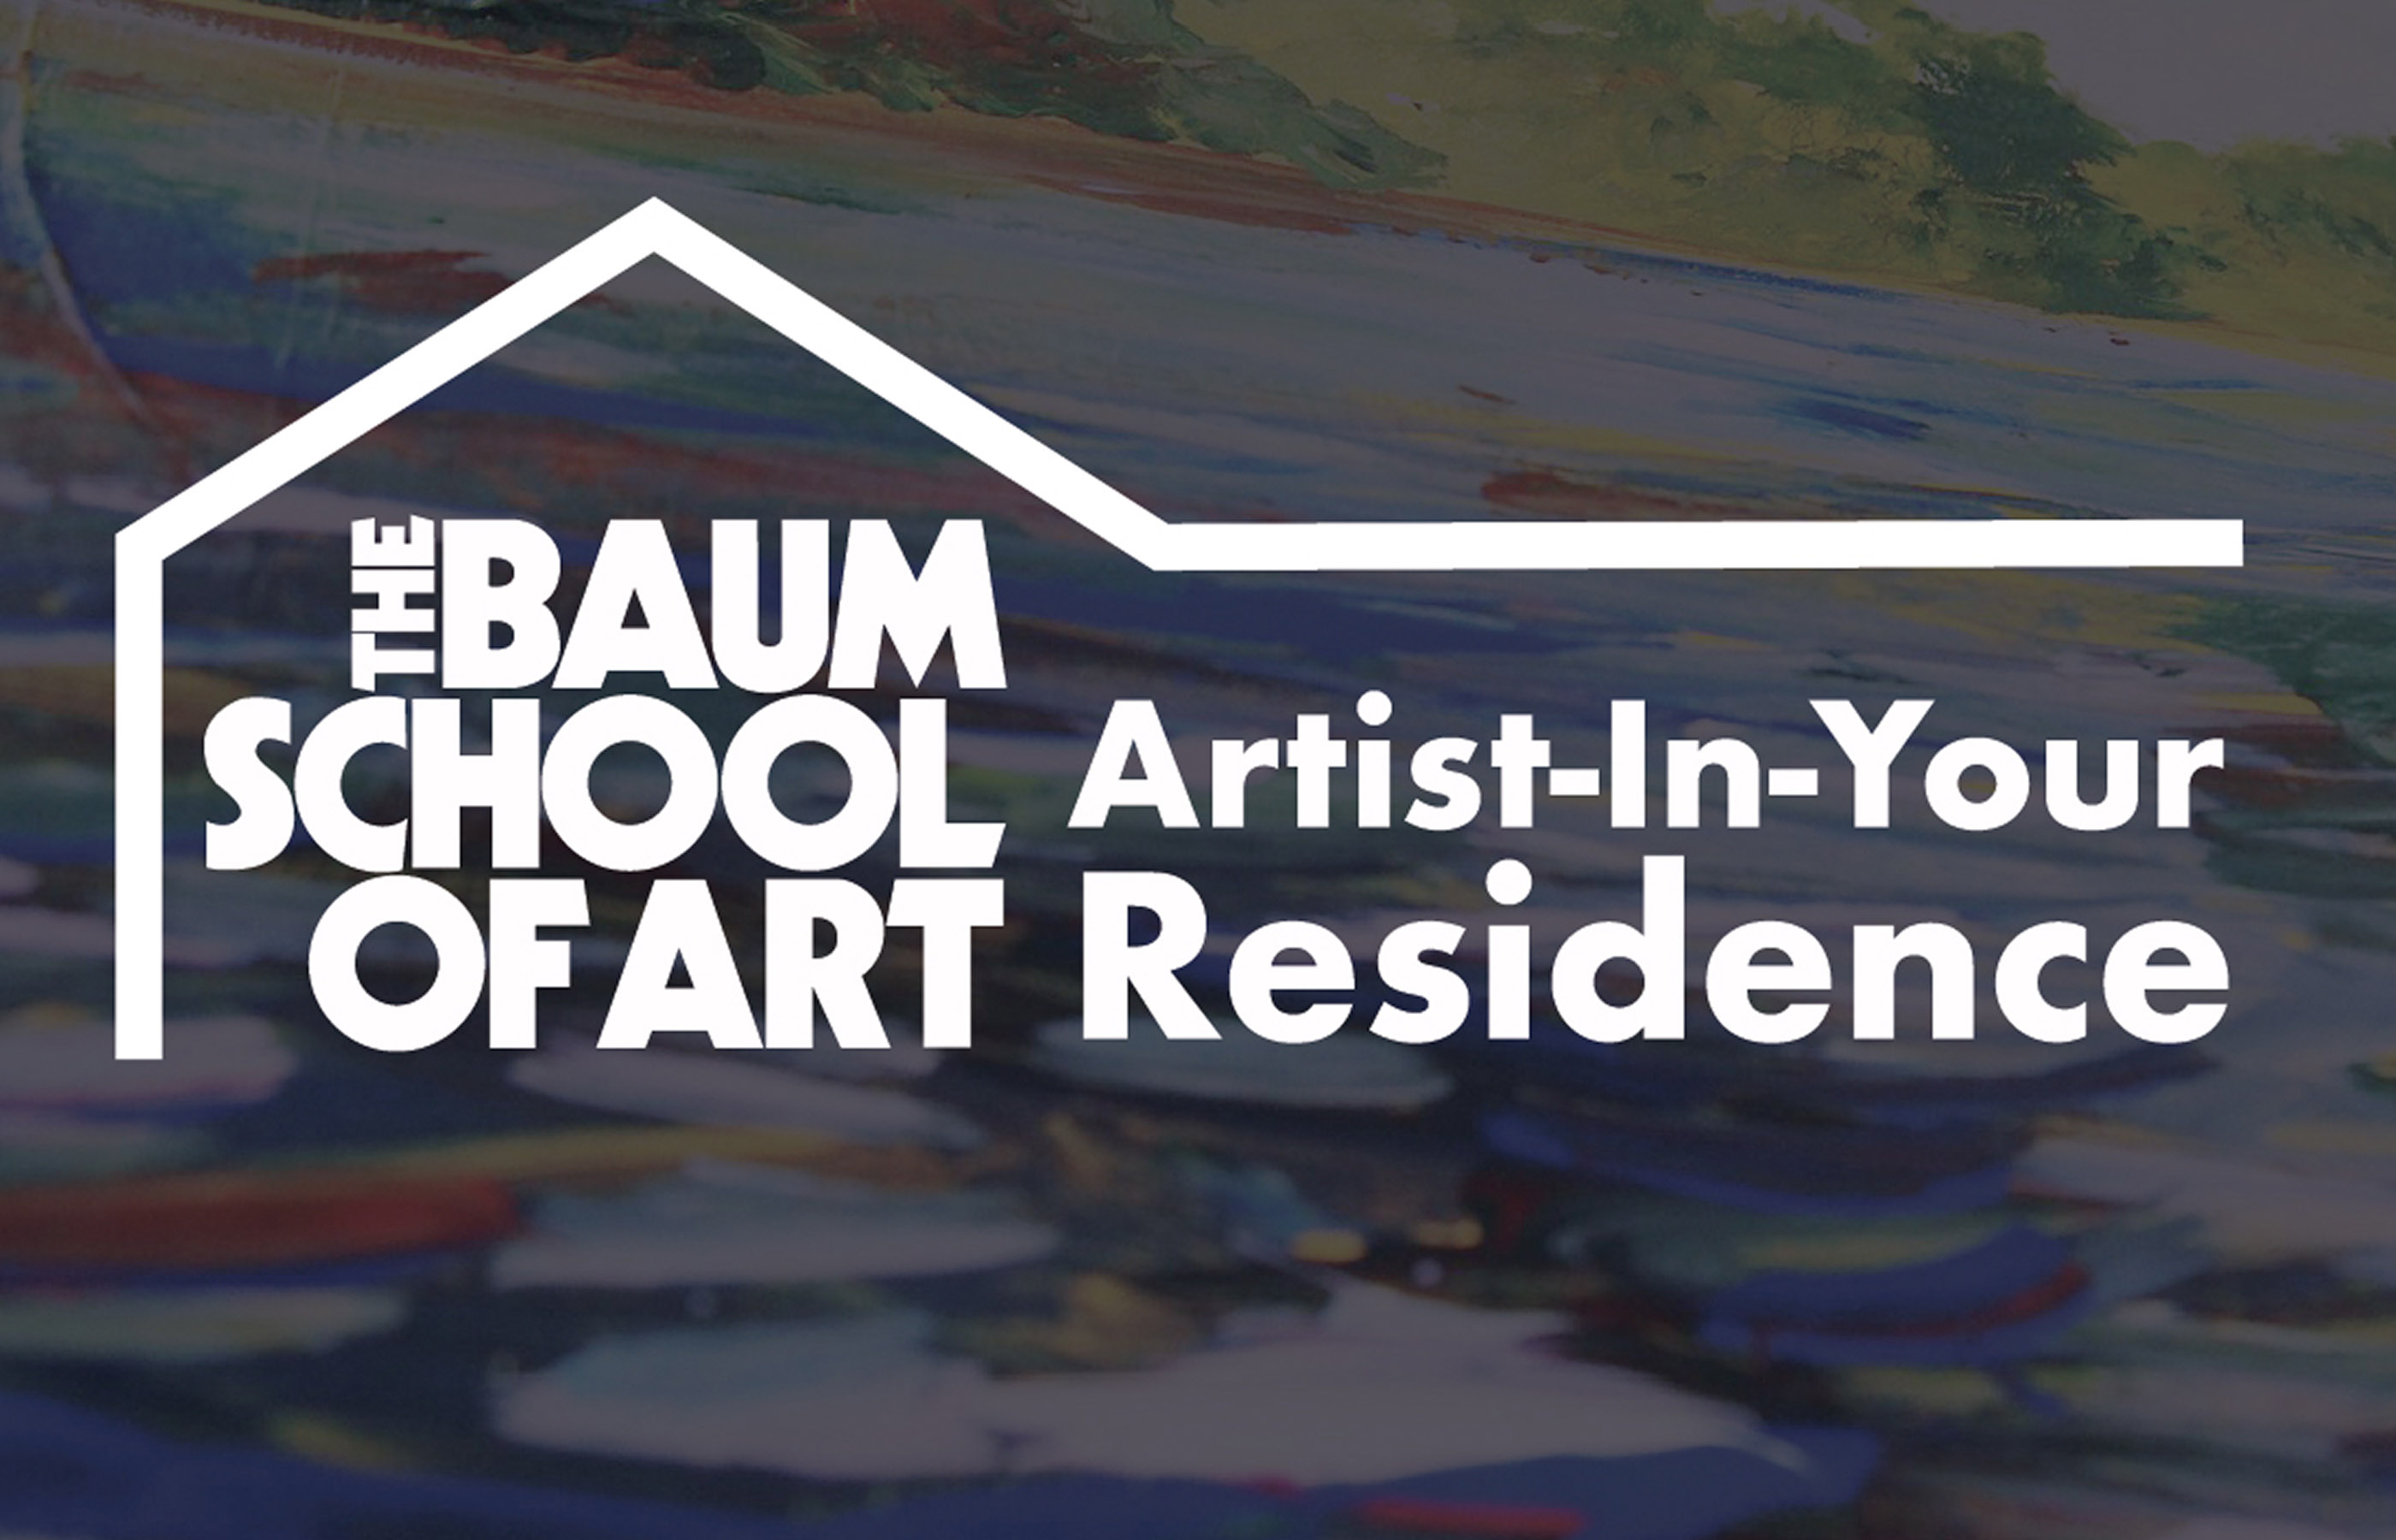 ARTIST-IN-YOUR-RESIDENCE Image